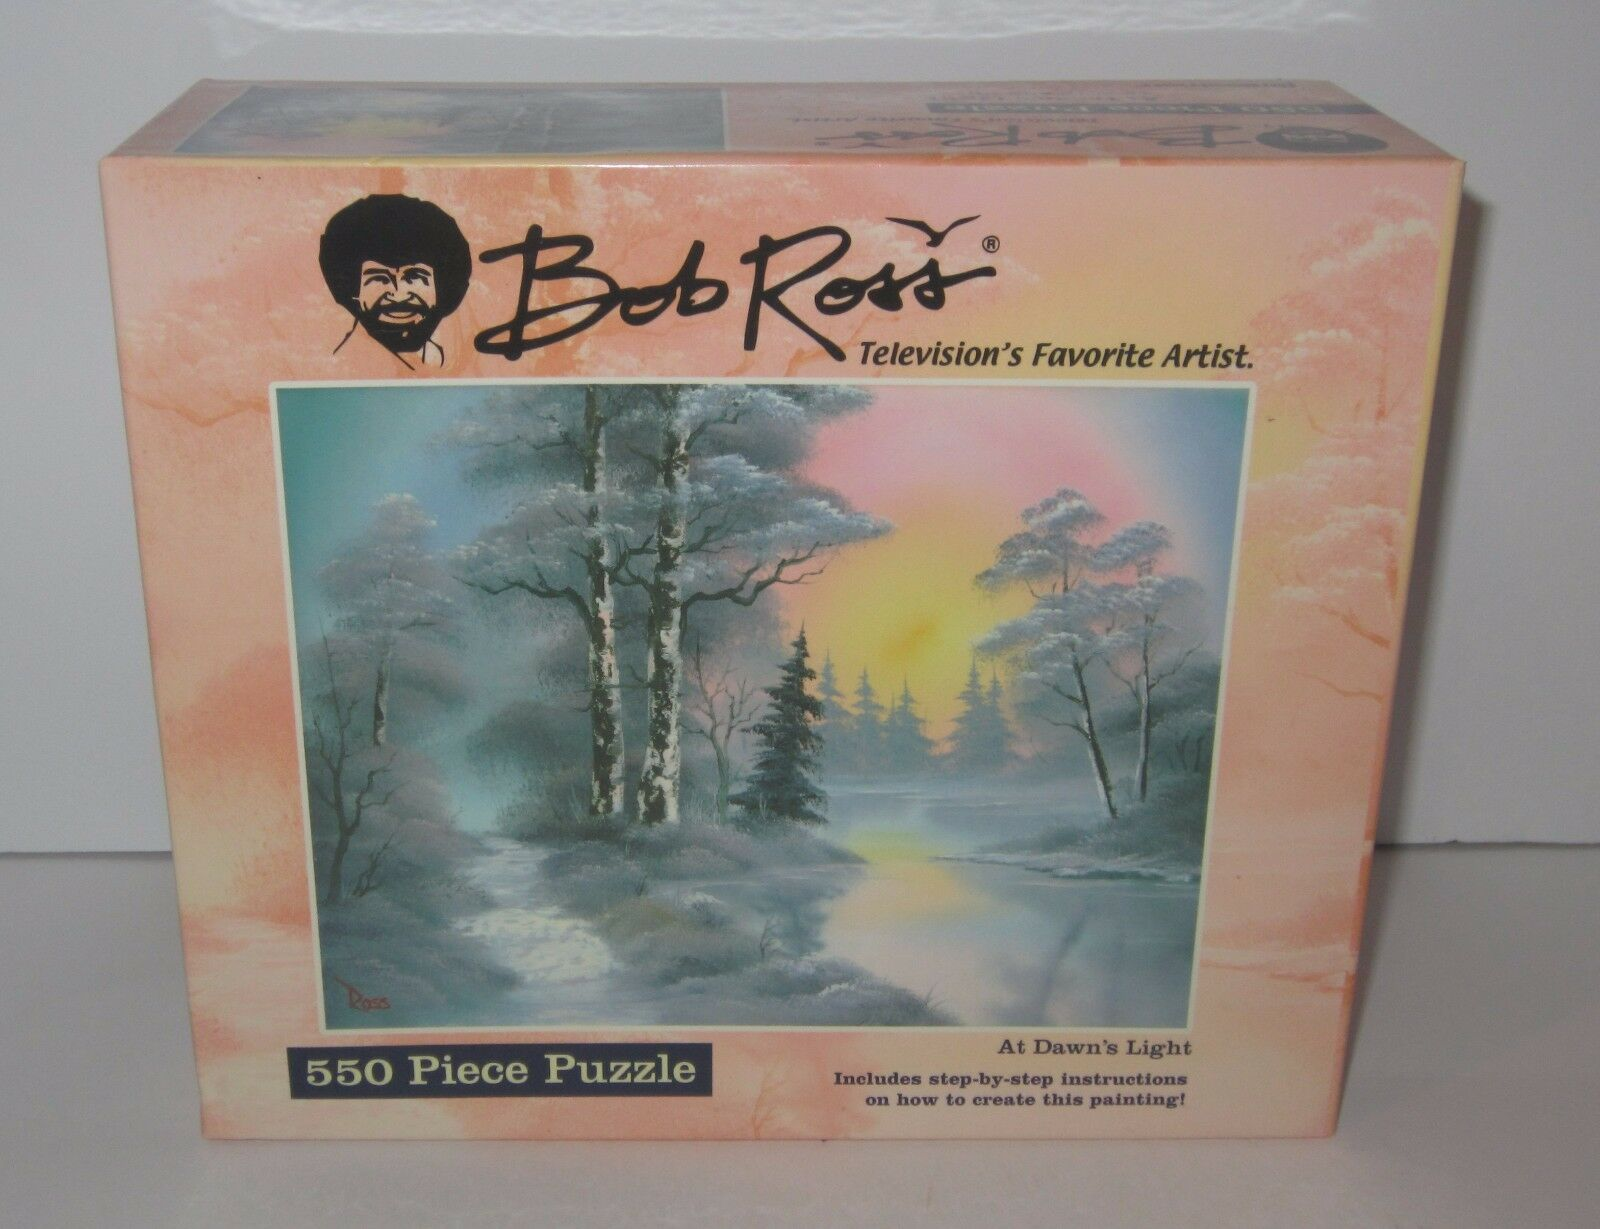 Bob Ross - At Dawn's Light - 550 Piece Puzzle - Pressman - Brand New & Sealed